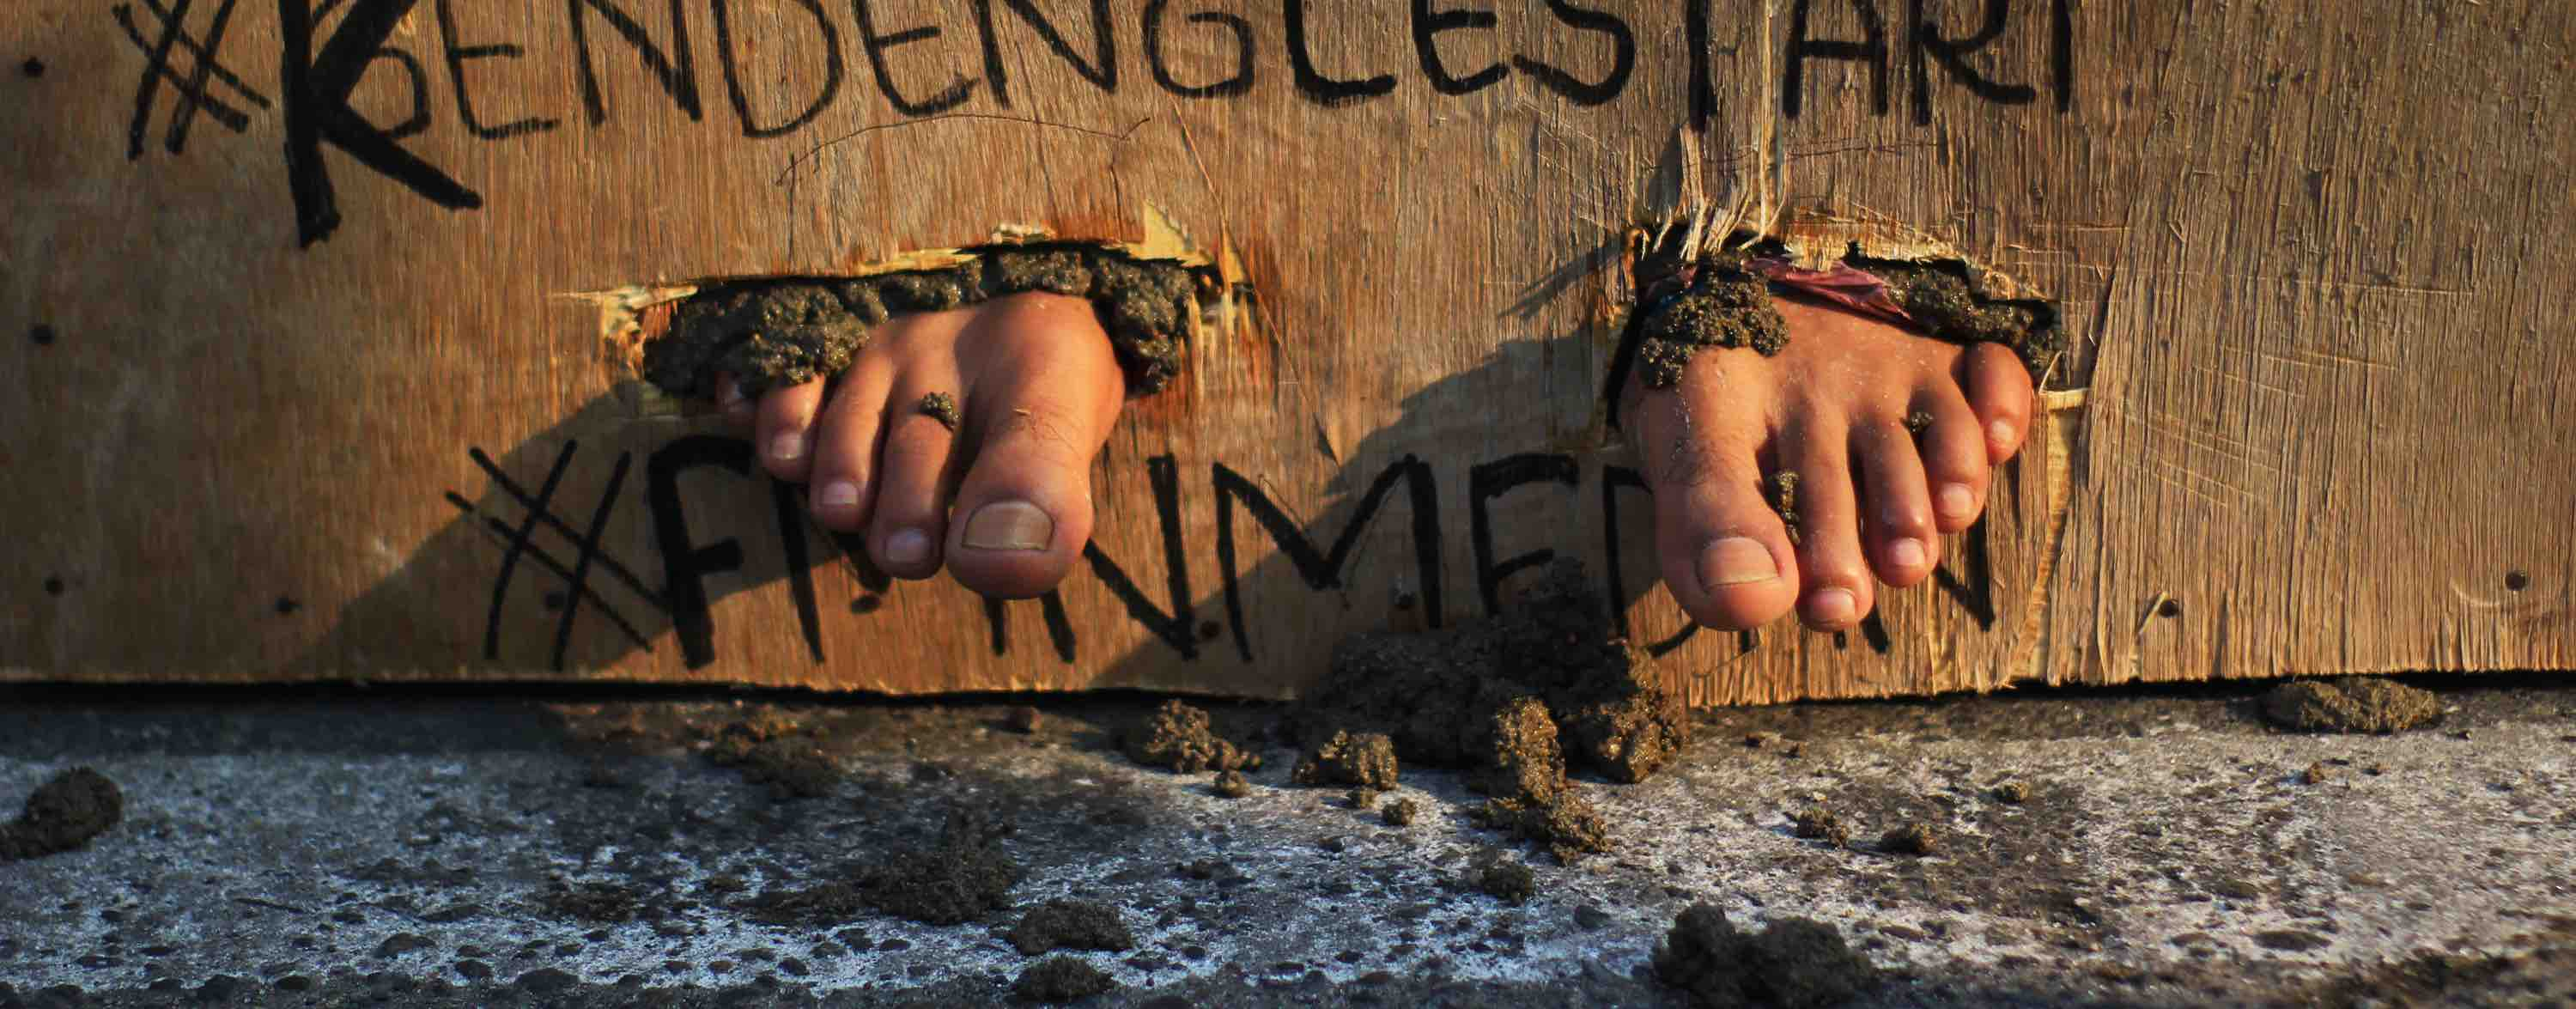 Protesters feet cemented in March 2017 in support for Kendeng farmers in Medan, Indonesia (Photo: Lana Priatna via Getty Images)